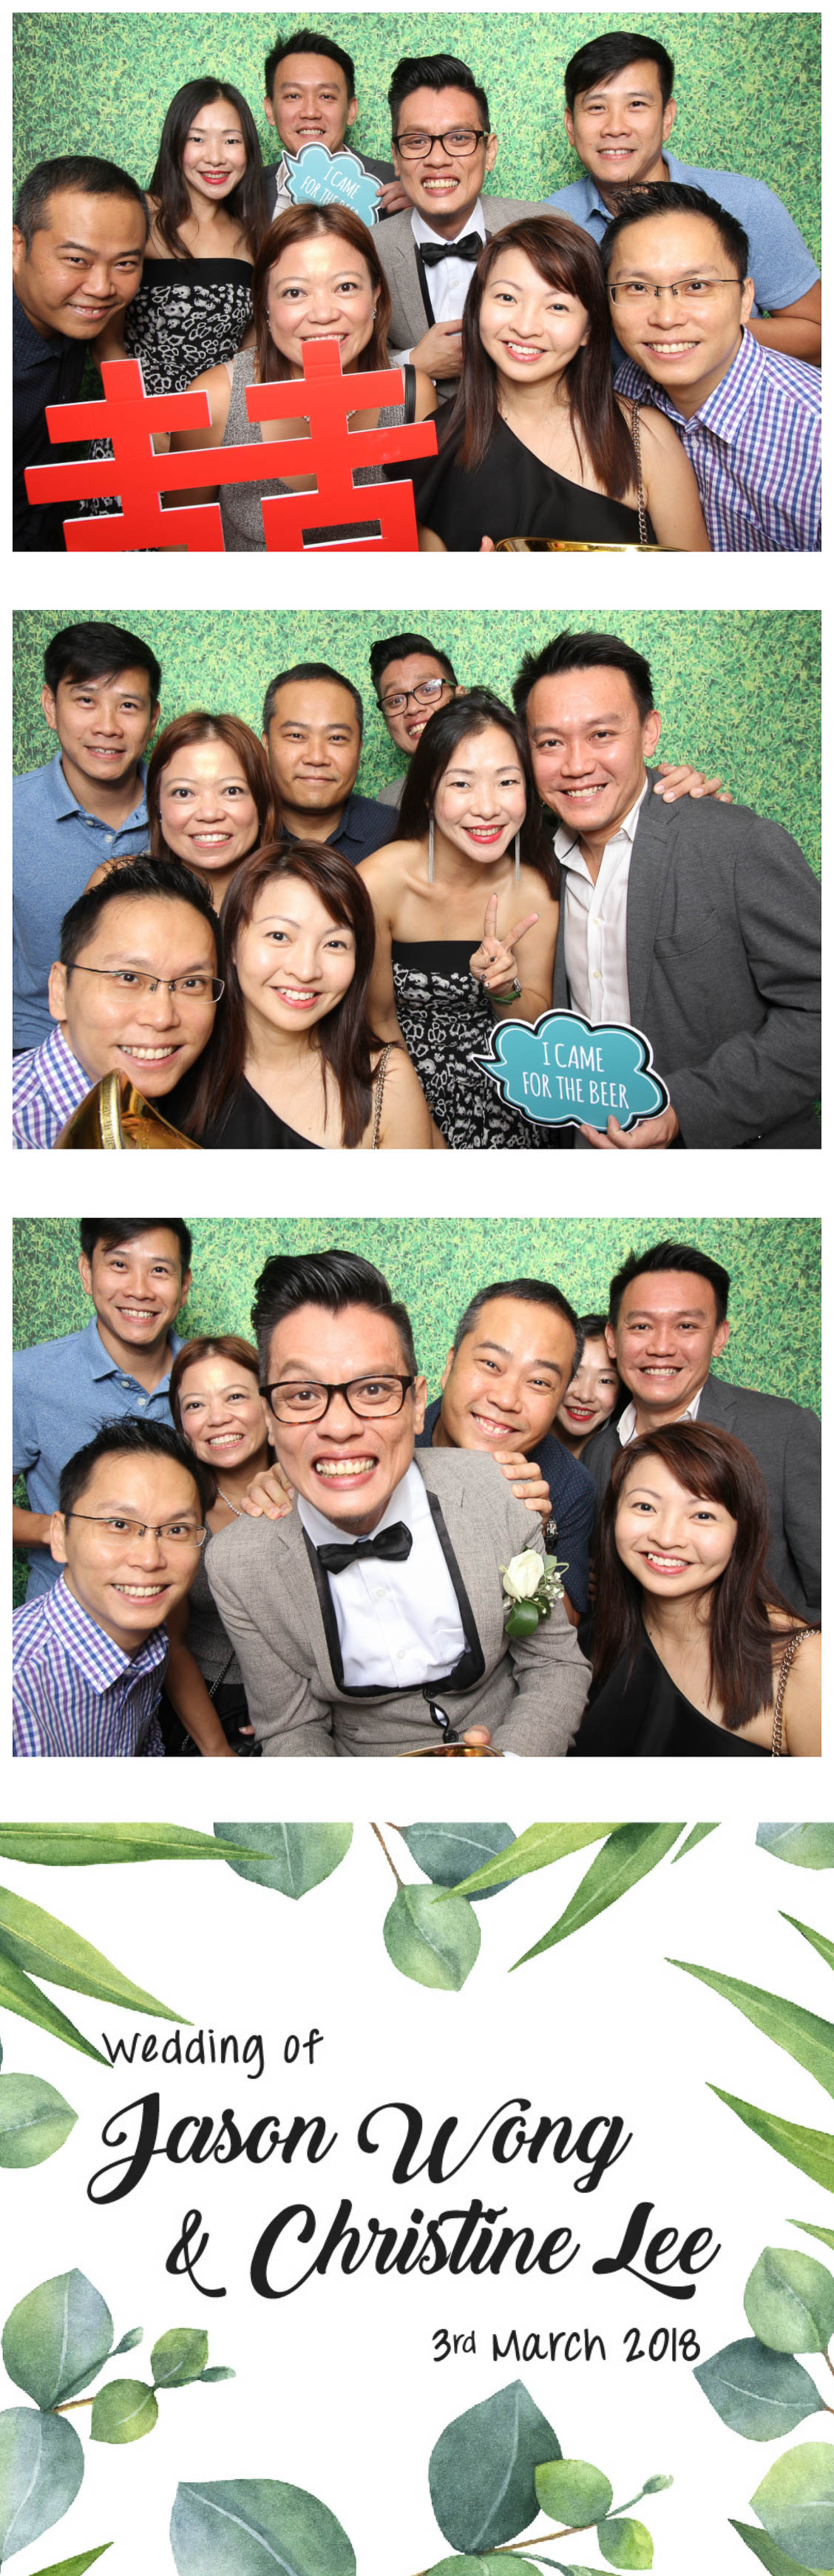 Photobooth 0302-4